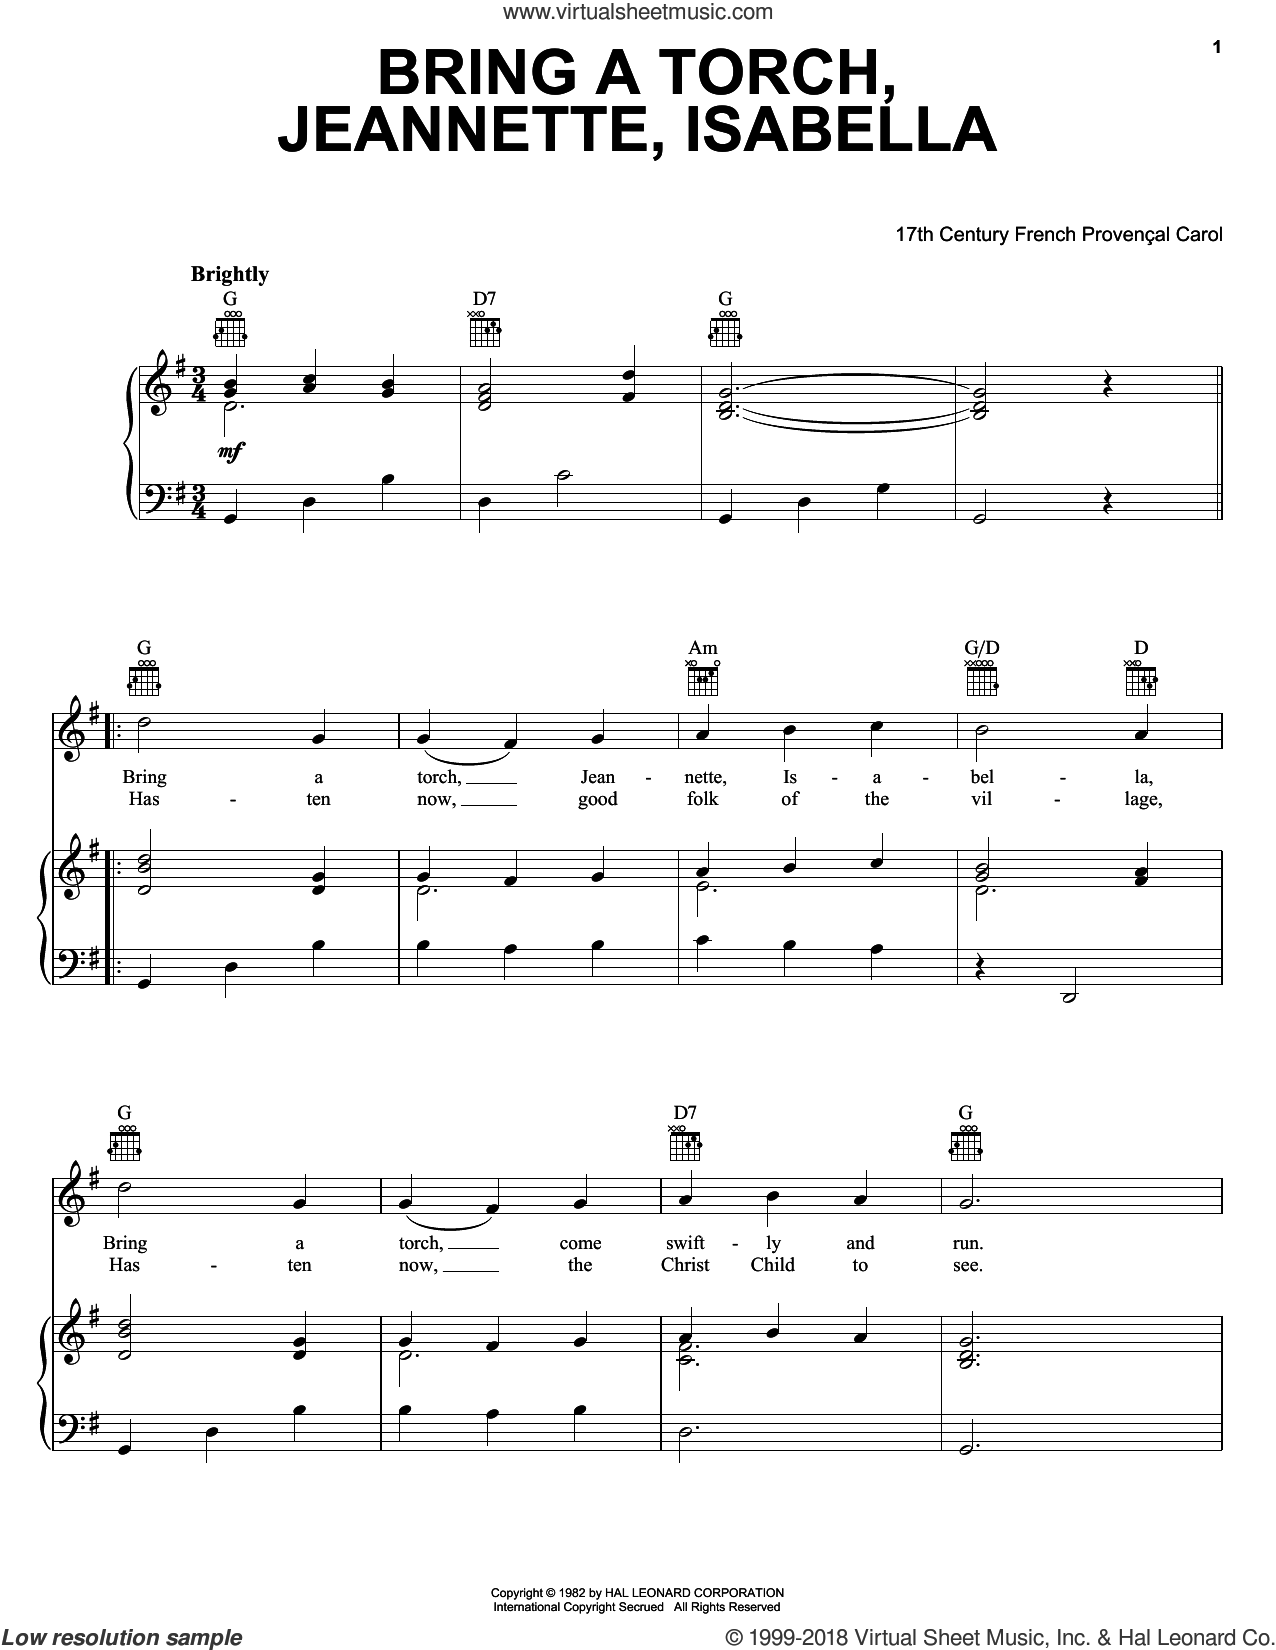 Bring A Torch, Jeannette Isabella sheet music for voice, piano or guitar by Anonymous and Miscellaneous, intermediate skill level